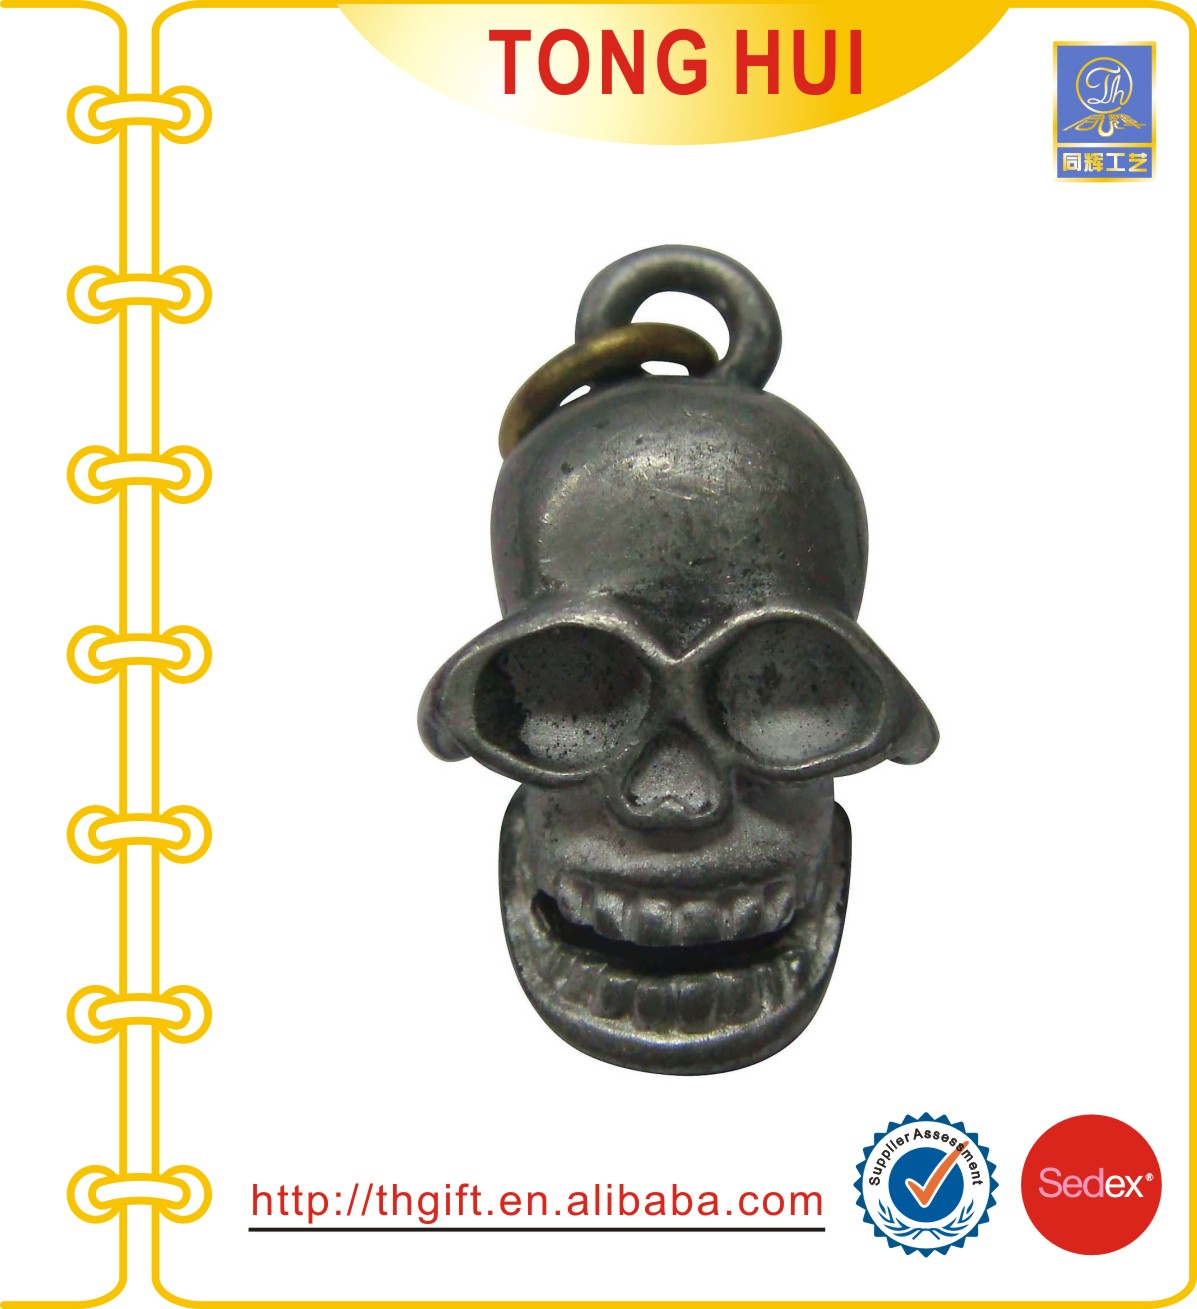 Metal crafts with 3D Skull head design attached the keychain